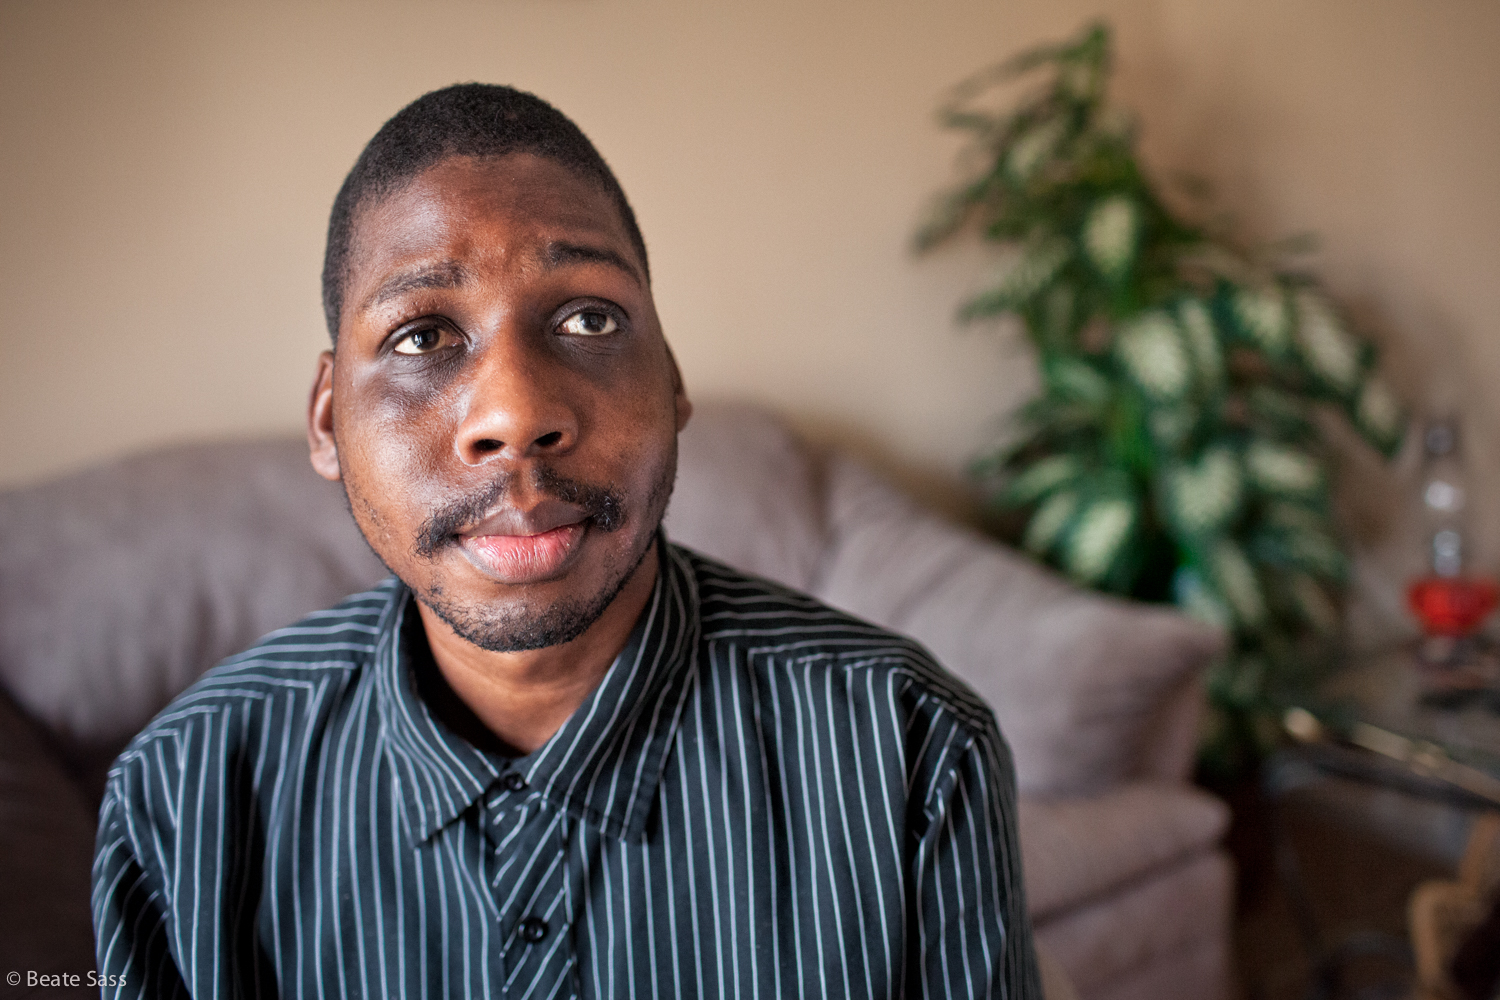 Michael aged out of high school over 8 years ago and has lived a life of isolation due to no support or funding. He is on the waiting list for a Medicaid Waiver. [Full story]